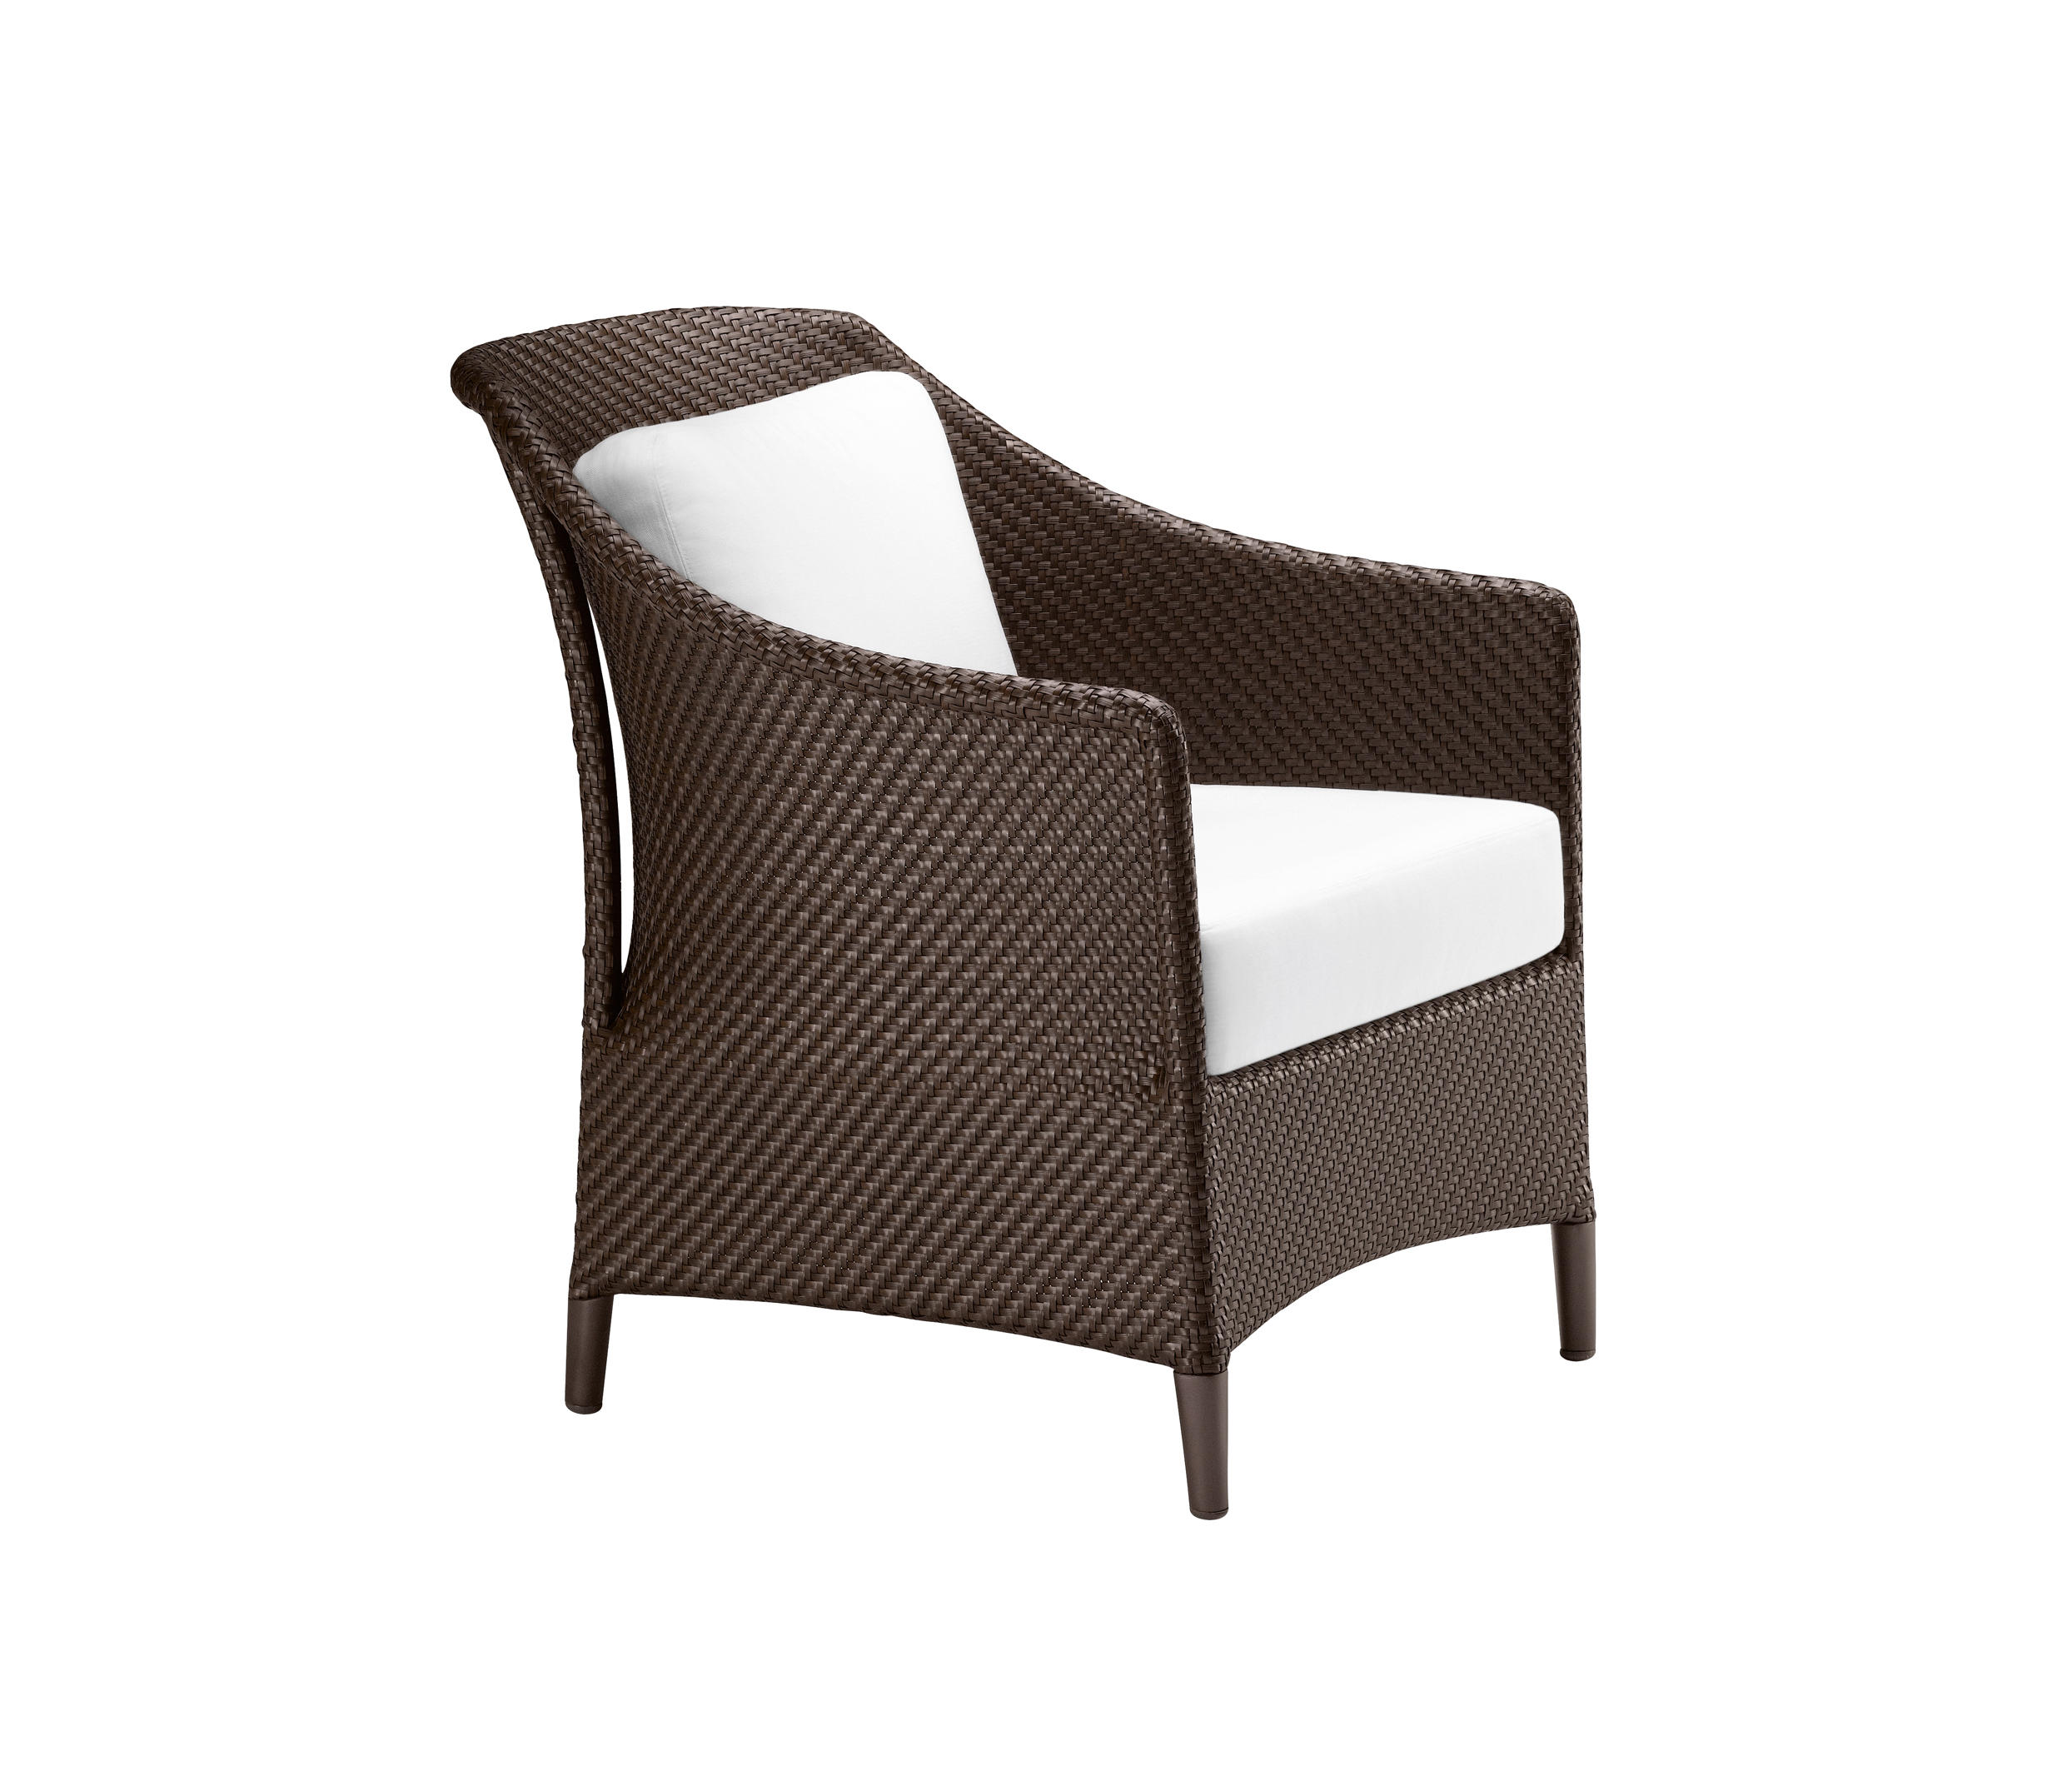 summerland lounge chair garden armchairs from dedon architonic